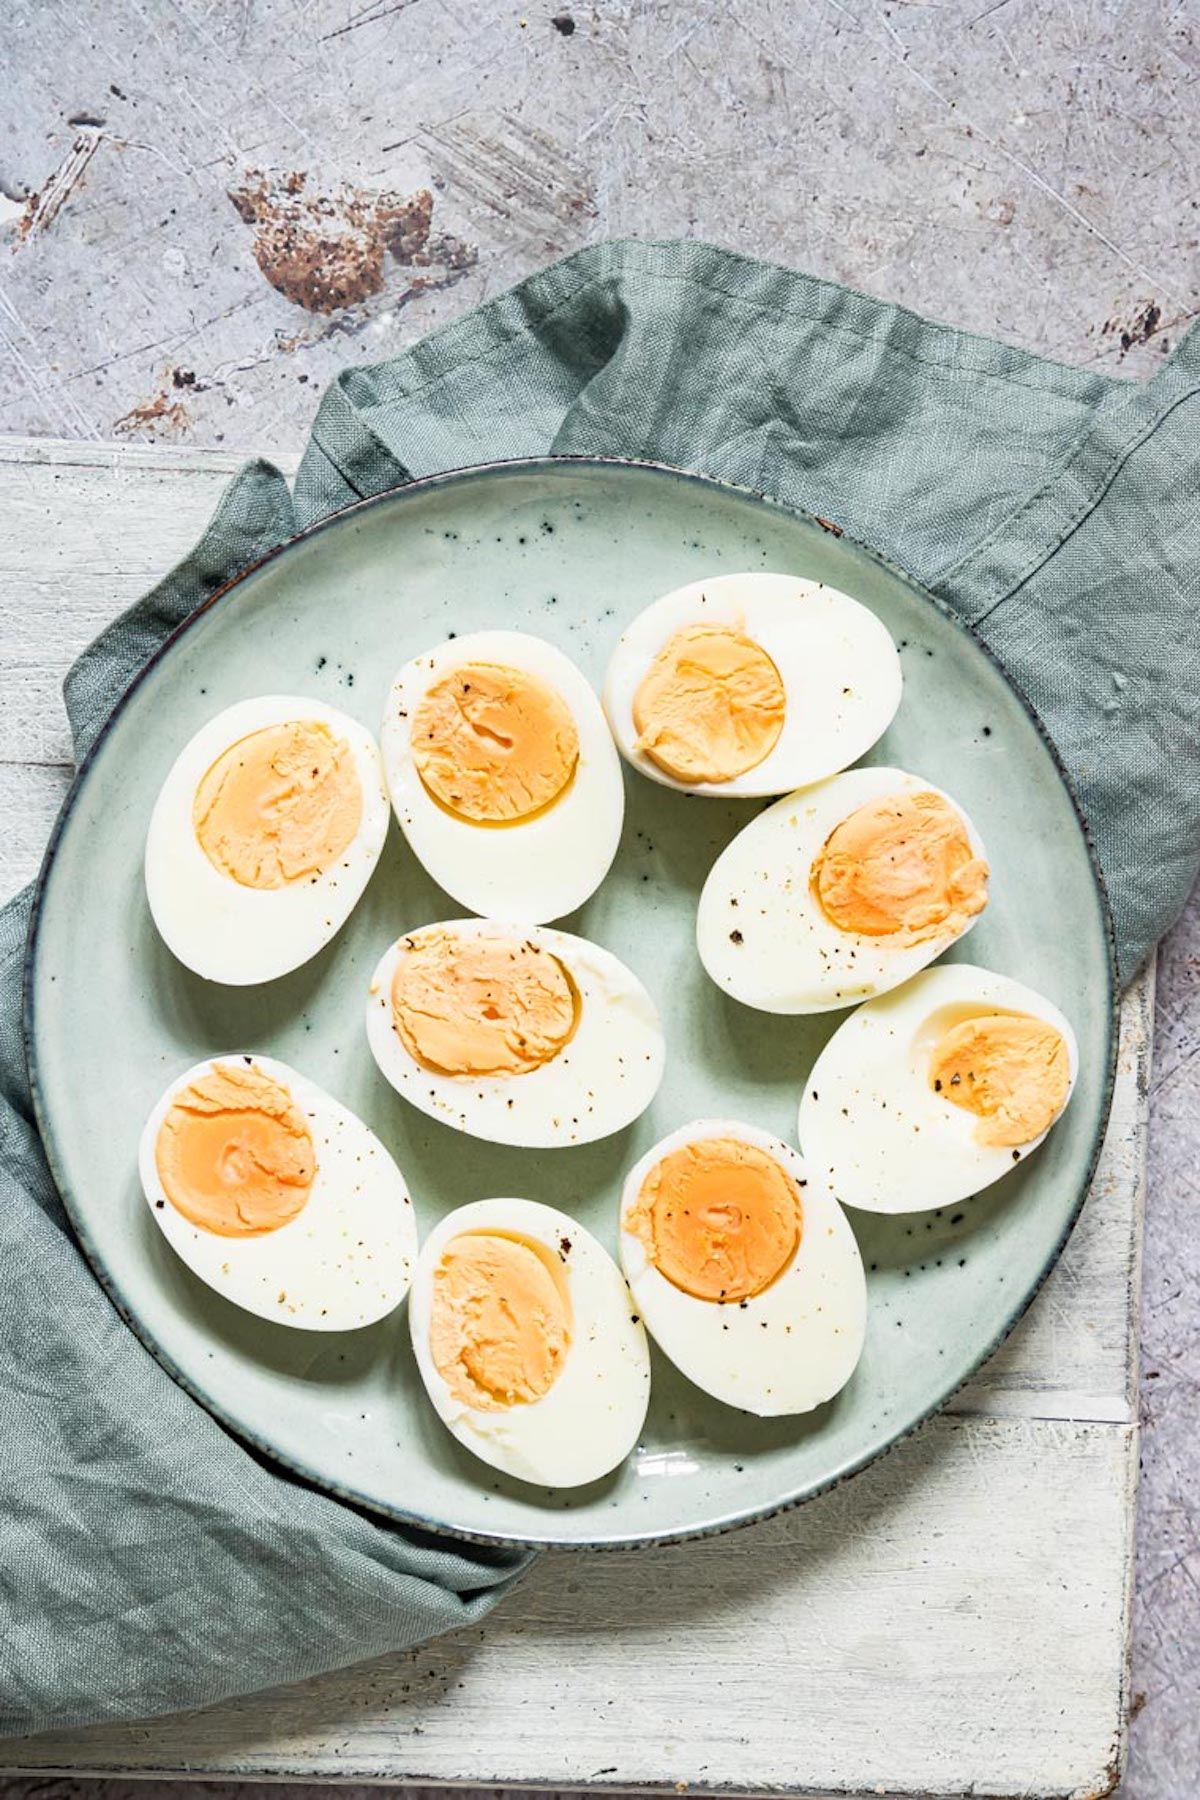 top down view of the completed instant pot hard boiled eggs on a blue plate